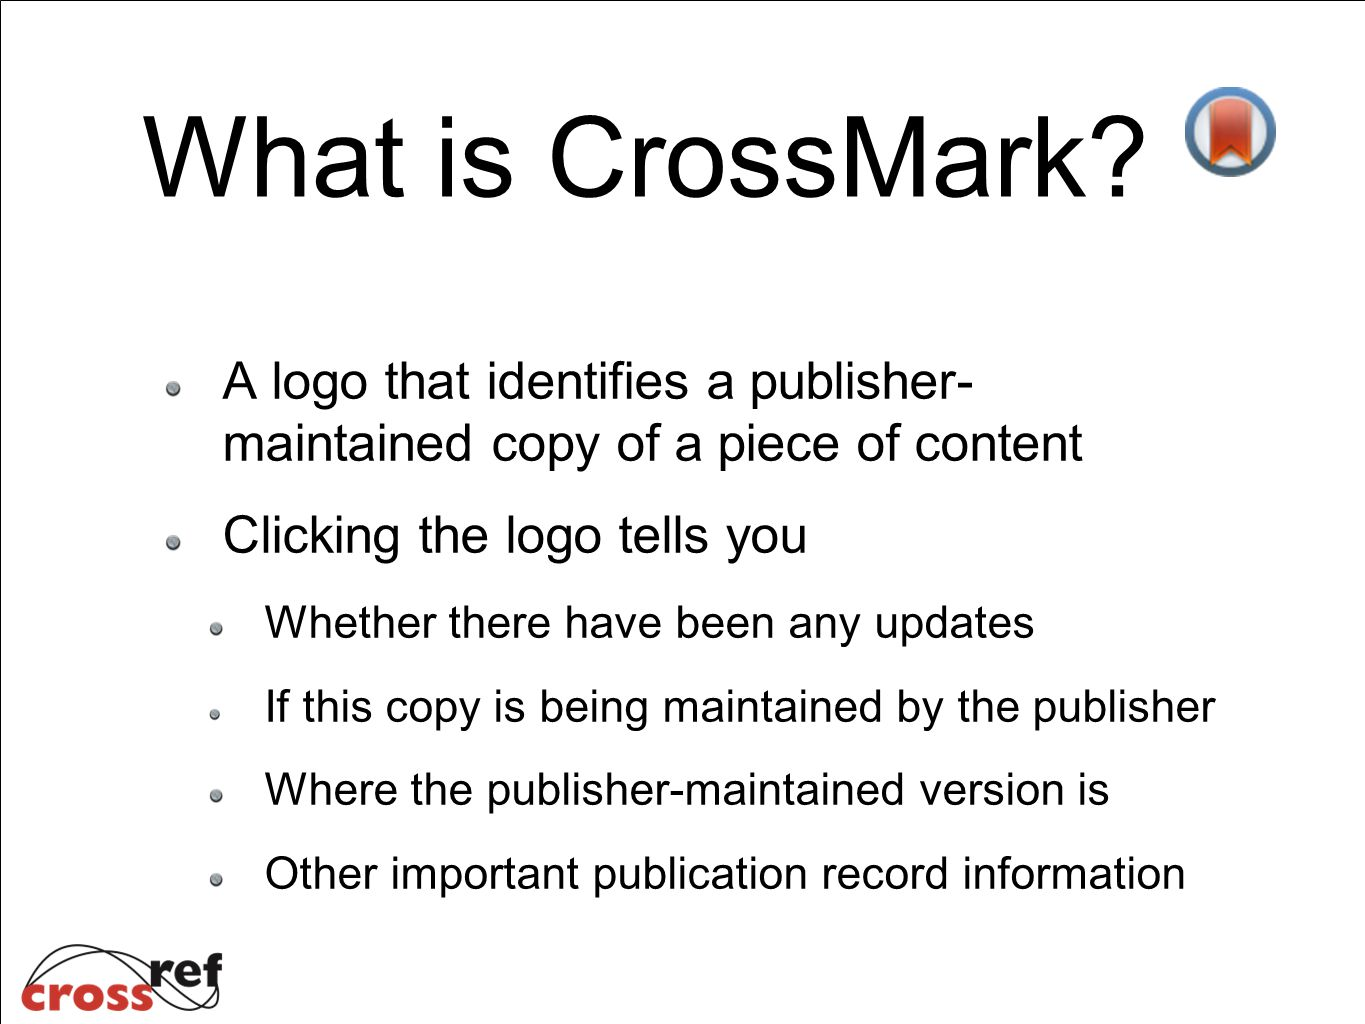 A logo that identifies a publisher- maintained copy of a piece of content Clicking the logo tells you Whether there have been any updates If this copy is being maintained by the publisher Where the publisher-maintained version is Other important publication record information What is CrossMark?